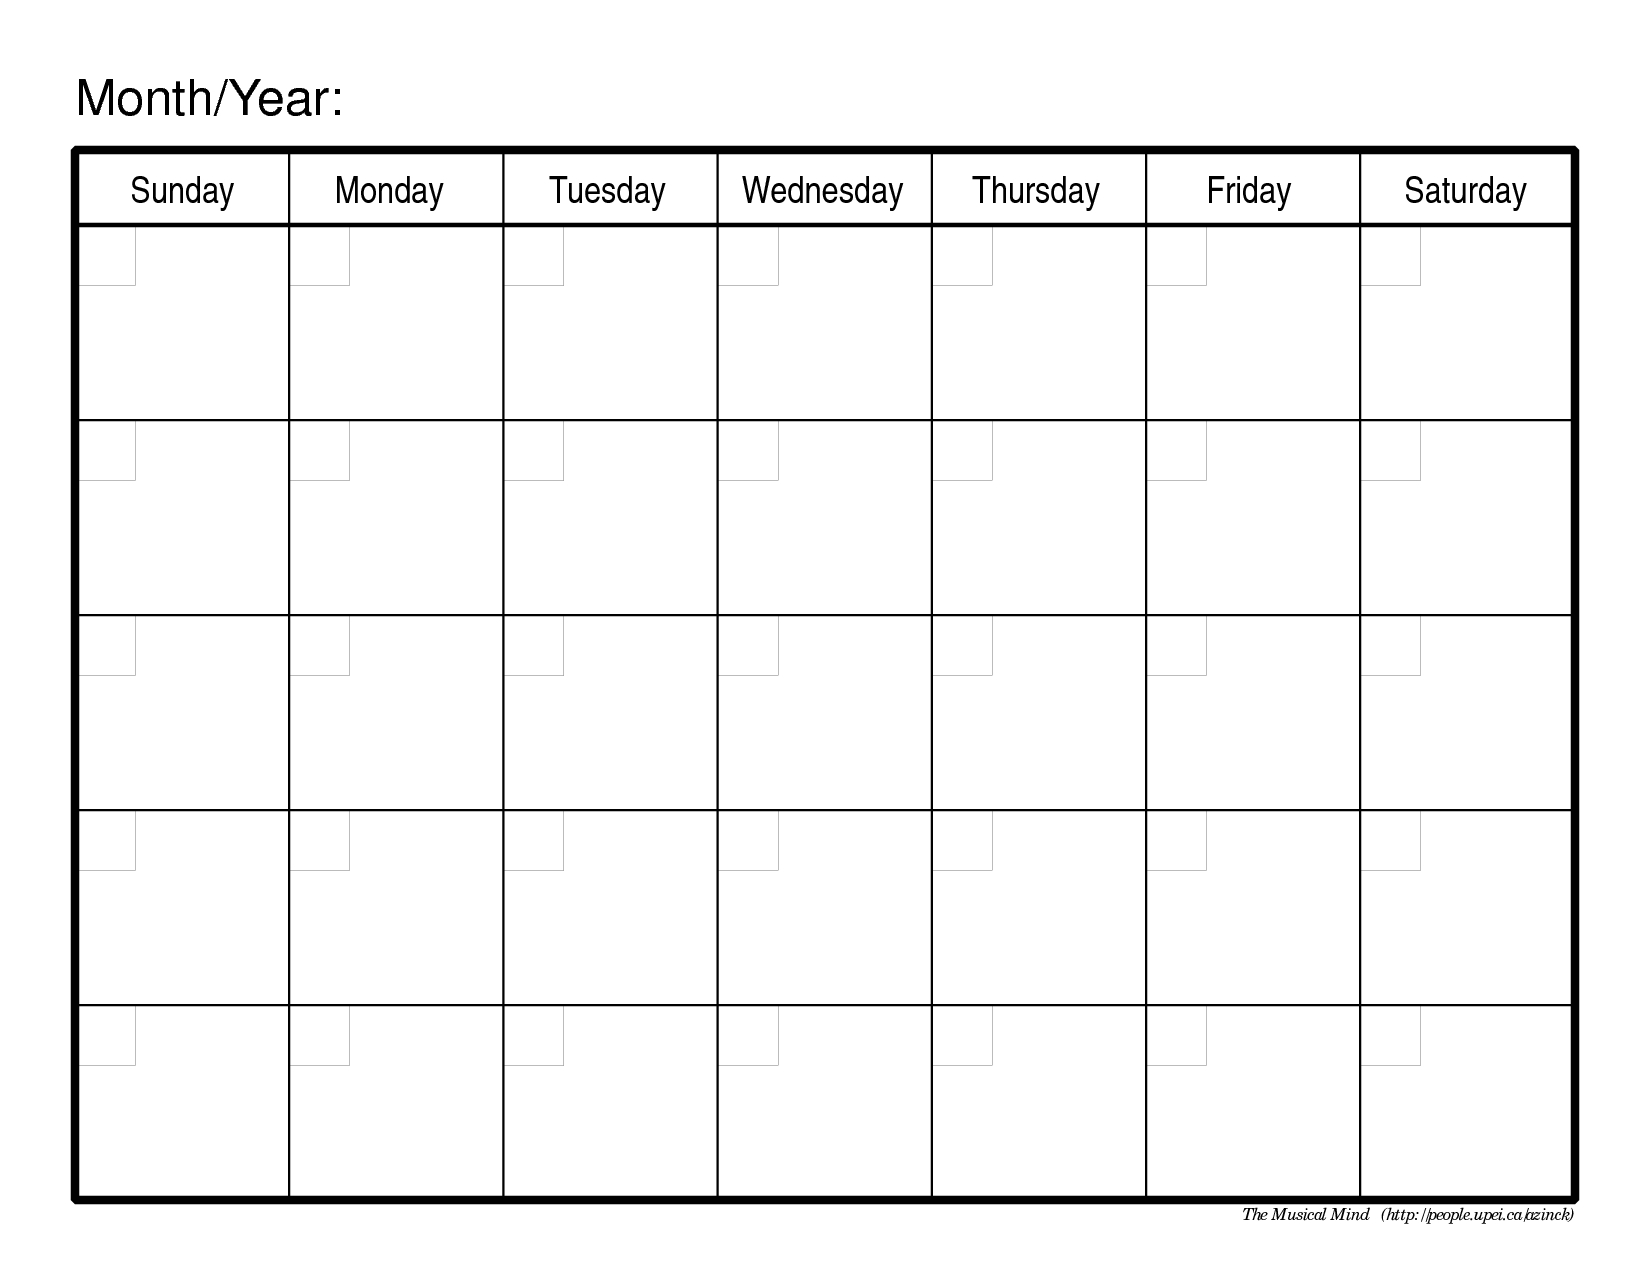 Calendar Templates Printable Free Fieldstation.co | Self Discovery regarding Empty Calendar Template For Kids